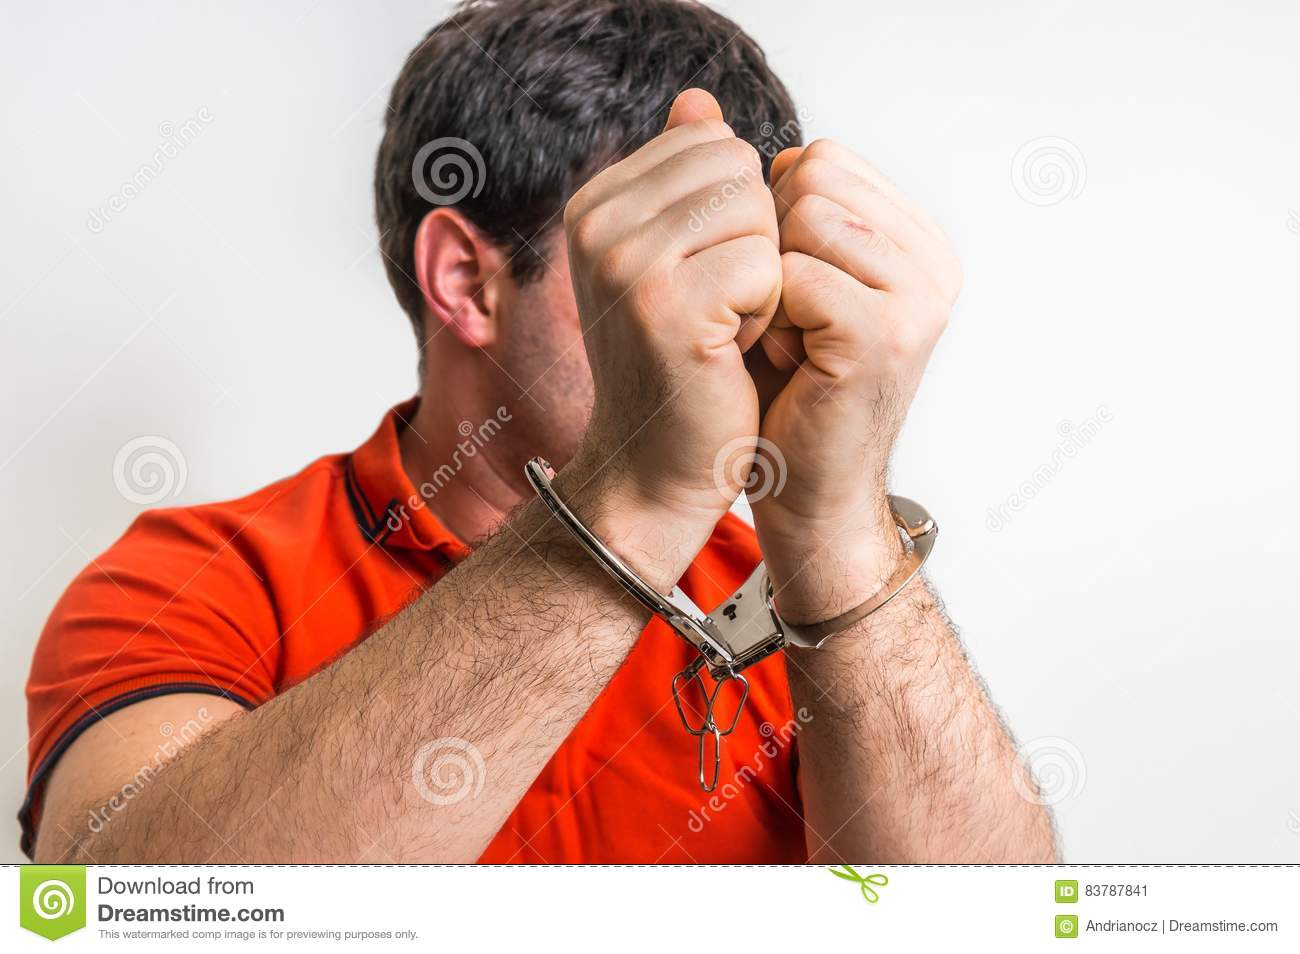 Download Arrested Man In Handcuffs Hidden His Face Stock Image - Image of covers, prisoner: 83787841